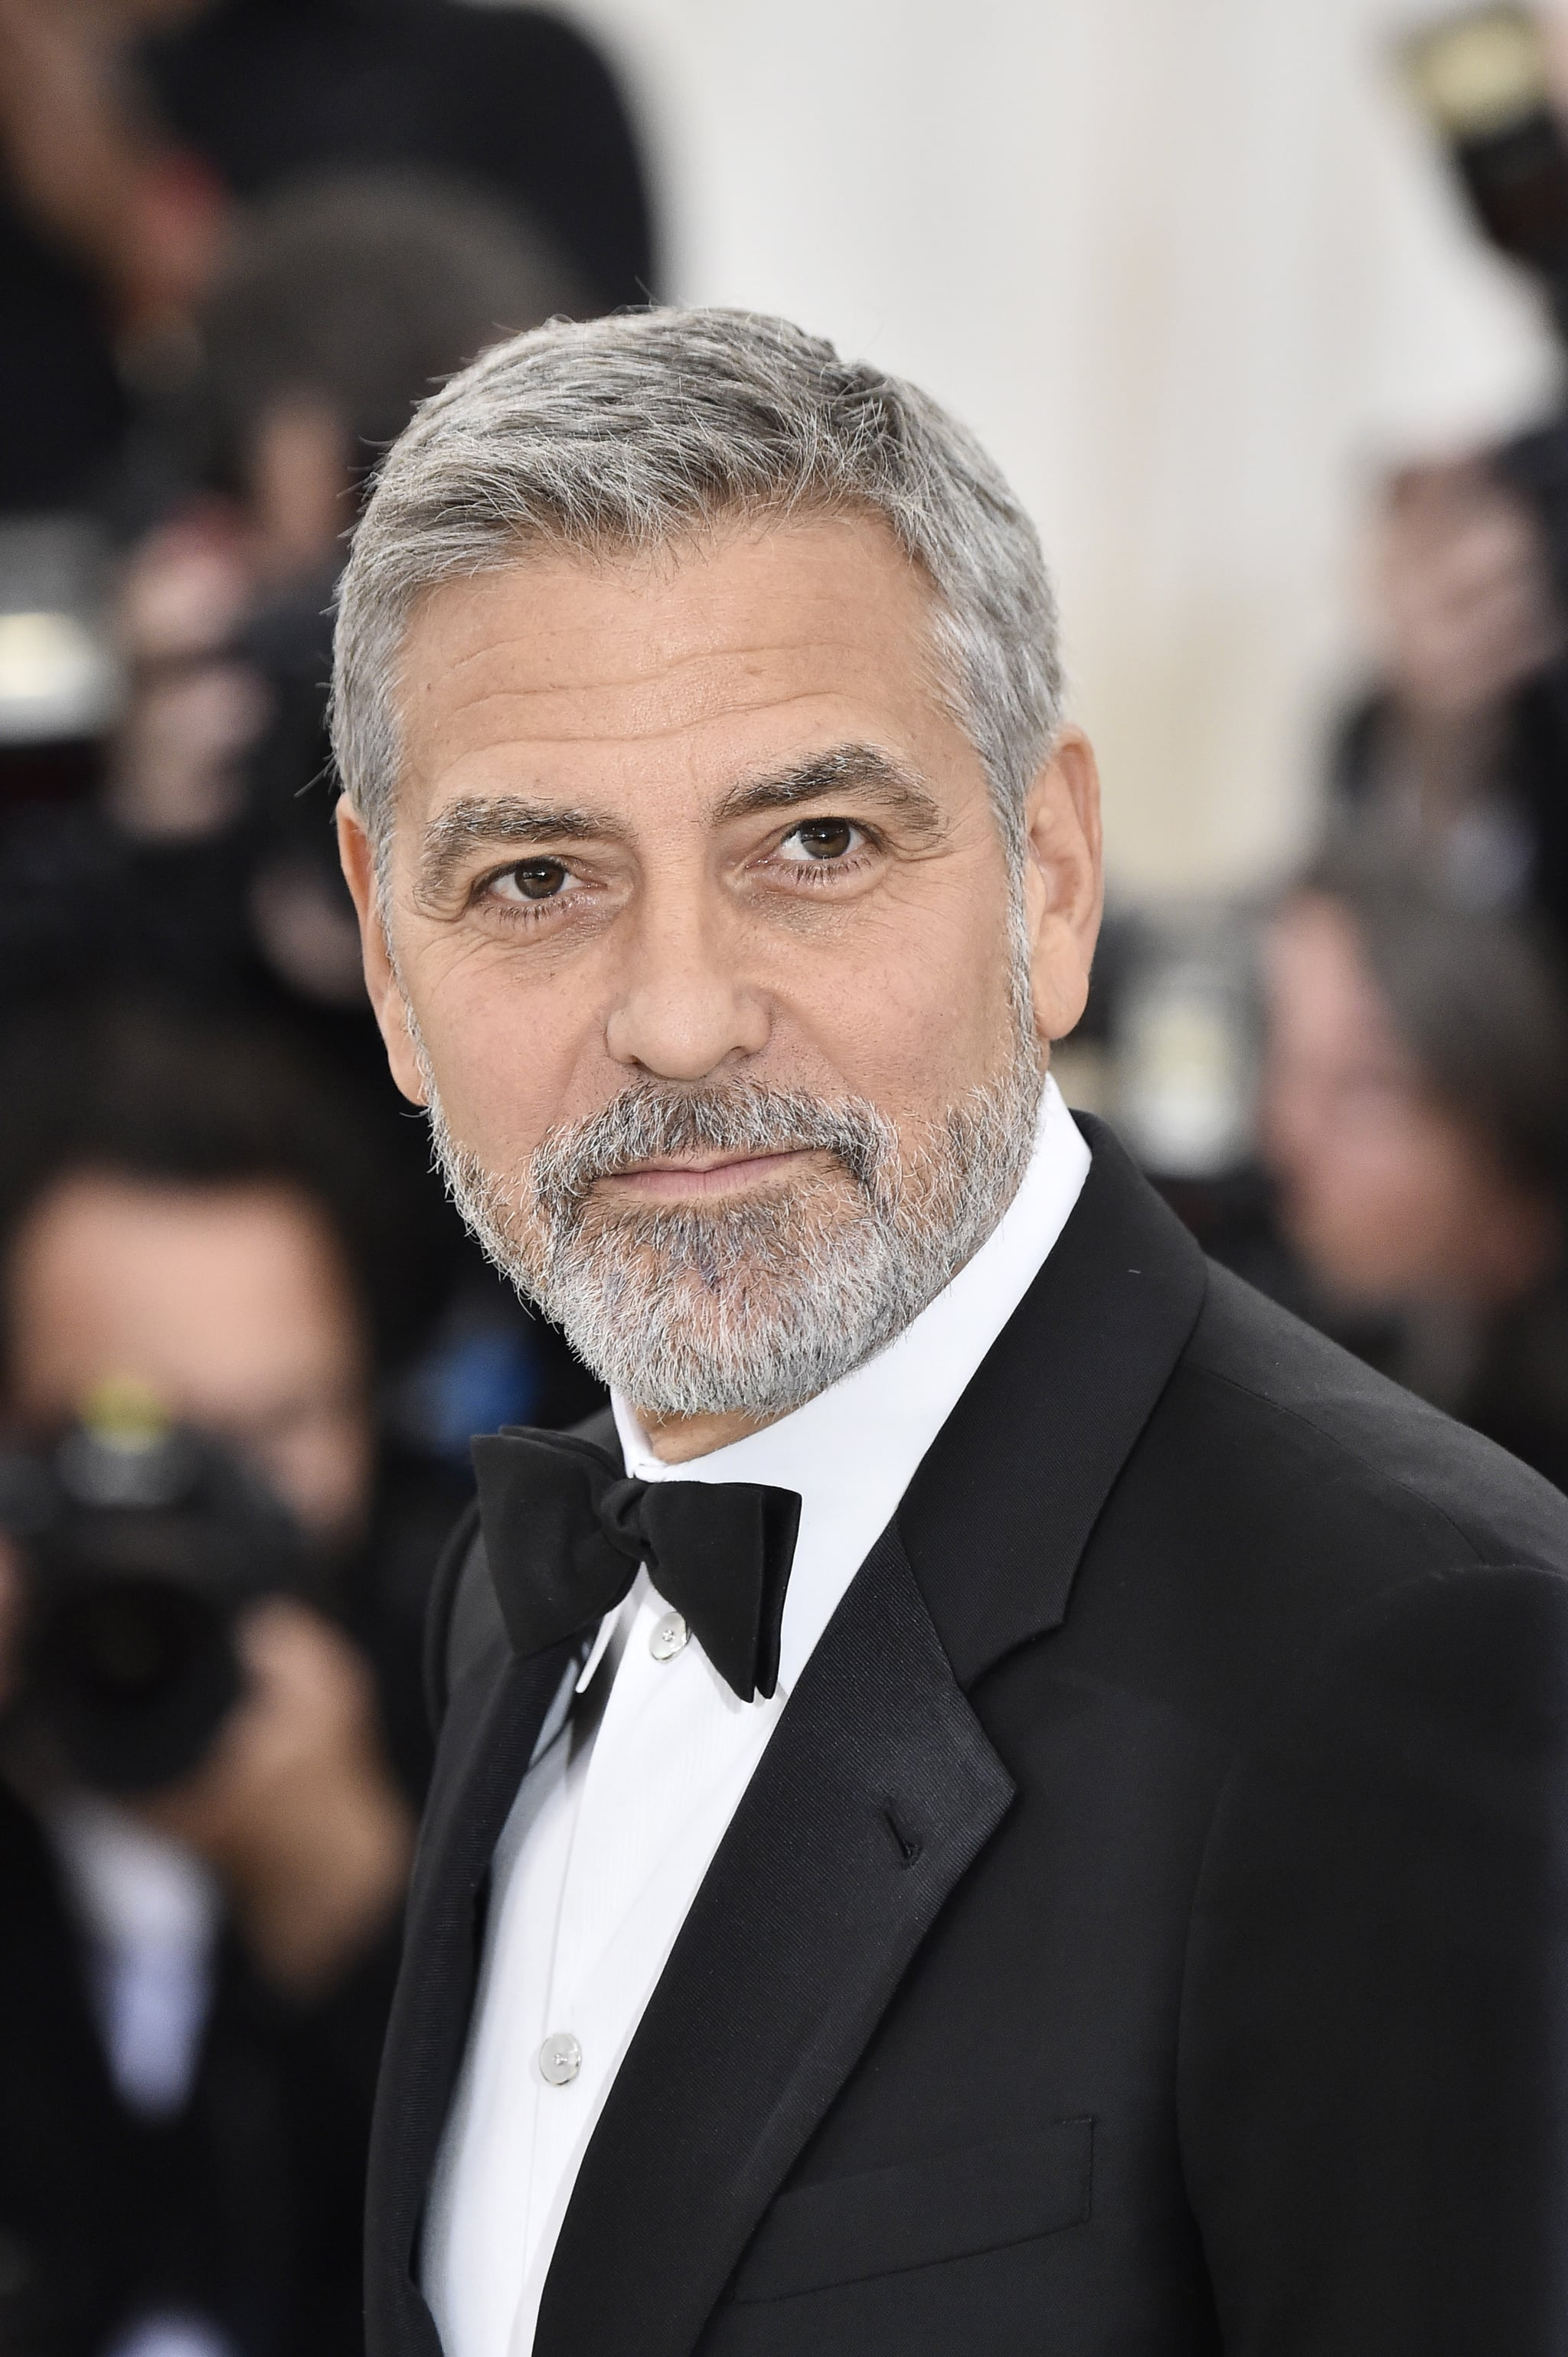 NEW YORK, NY - MAY 07:  George Clooney attends the Heavenly Bodies: Fashion & The Catholic Imagination Costume Institute Gala at The Metropolitan Museum of Art on May 7, 2018 in New York City.  (Photo by Frazer Harrison/FilmMagic)